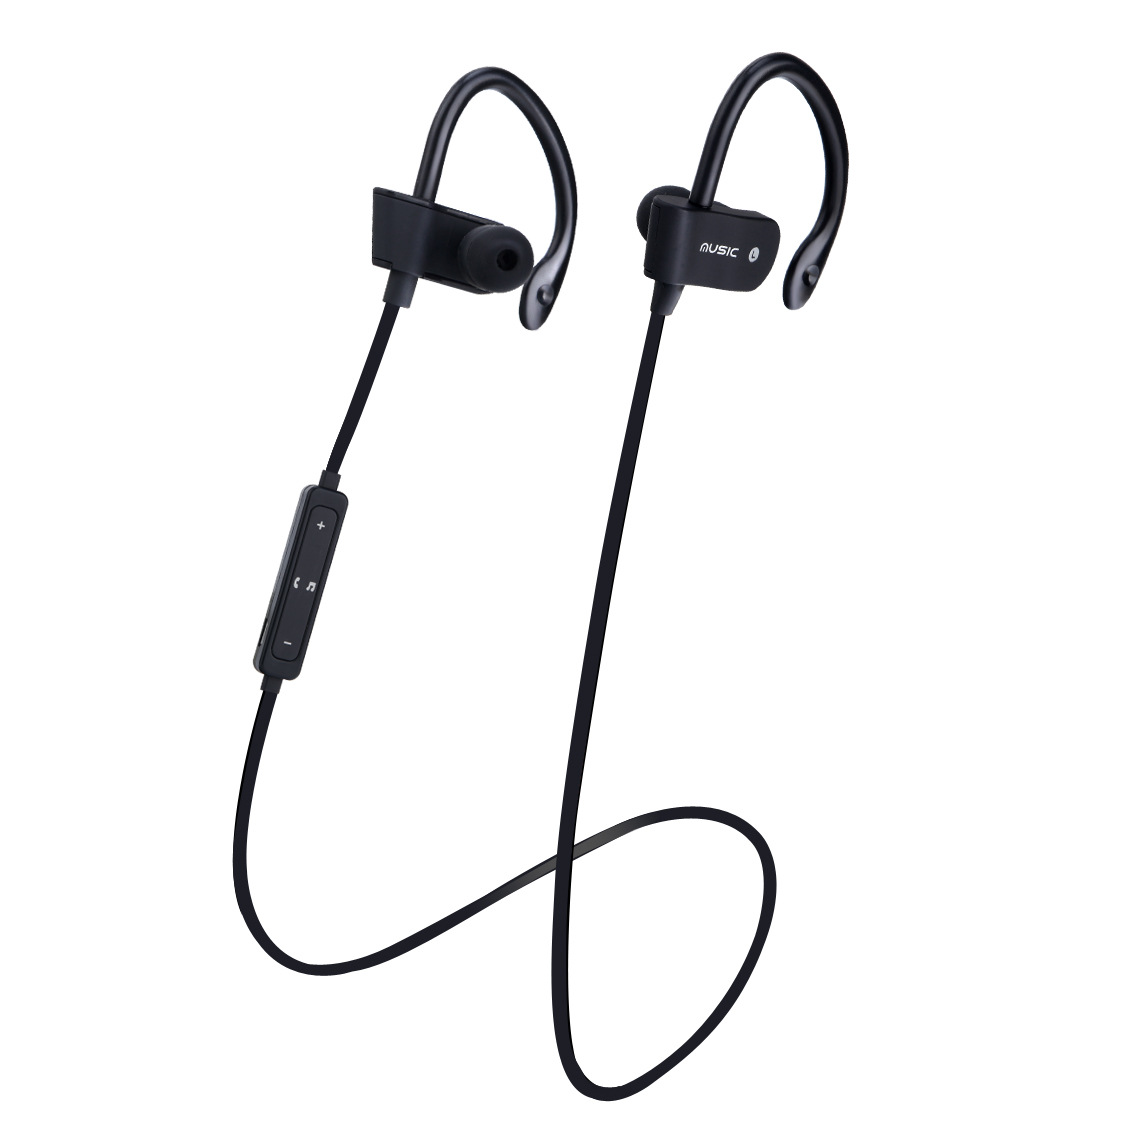 Hongsund Wireless Bluetooth 4.1 Headset Earphone Stereo Bass Music Sport Headphone Handsfree with Mic for IOS Android Smartphone lymoc v8s business bluetooth headset wireless earphone car bluetooth v4 1 phone handsfree mic music for iphone xiaomi samsung